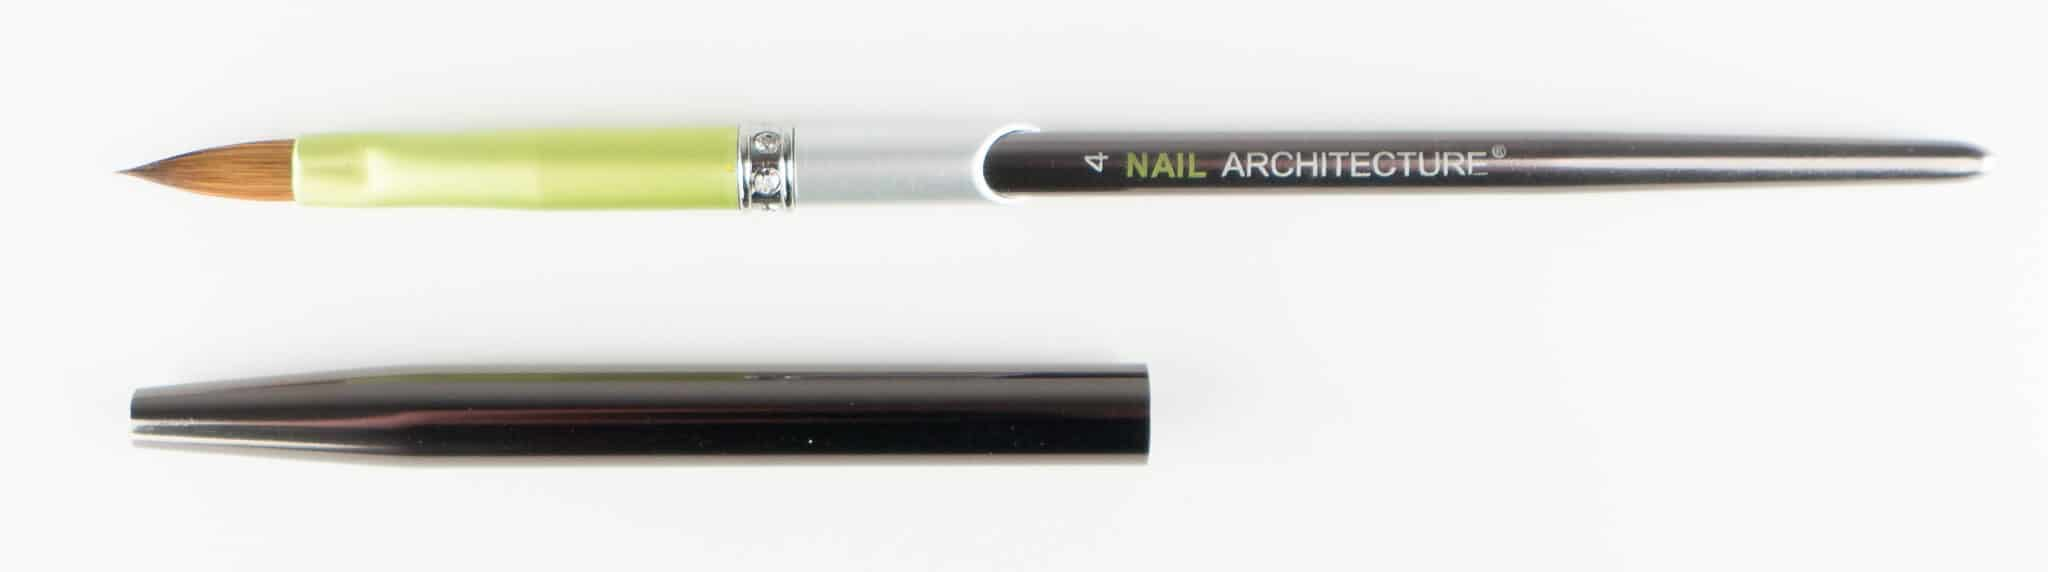 Nail Architecture size 4 pencil brush with cap next to it